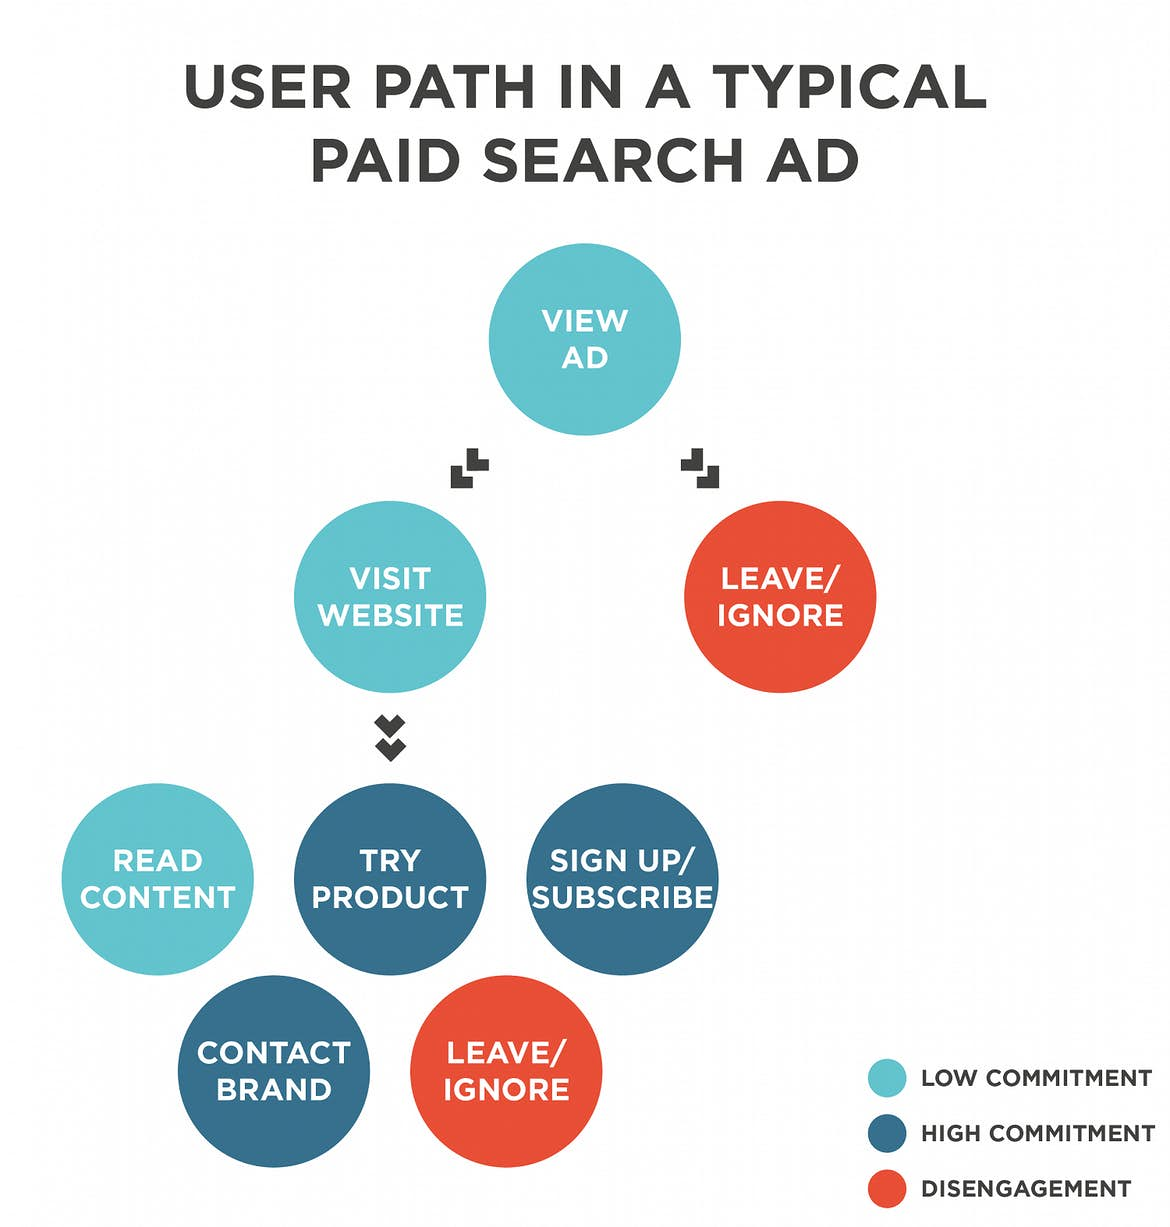 Paid search often results in high commitment options for the user